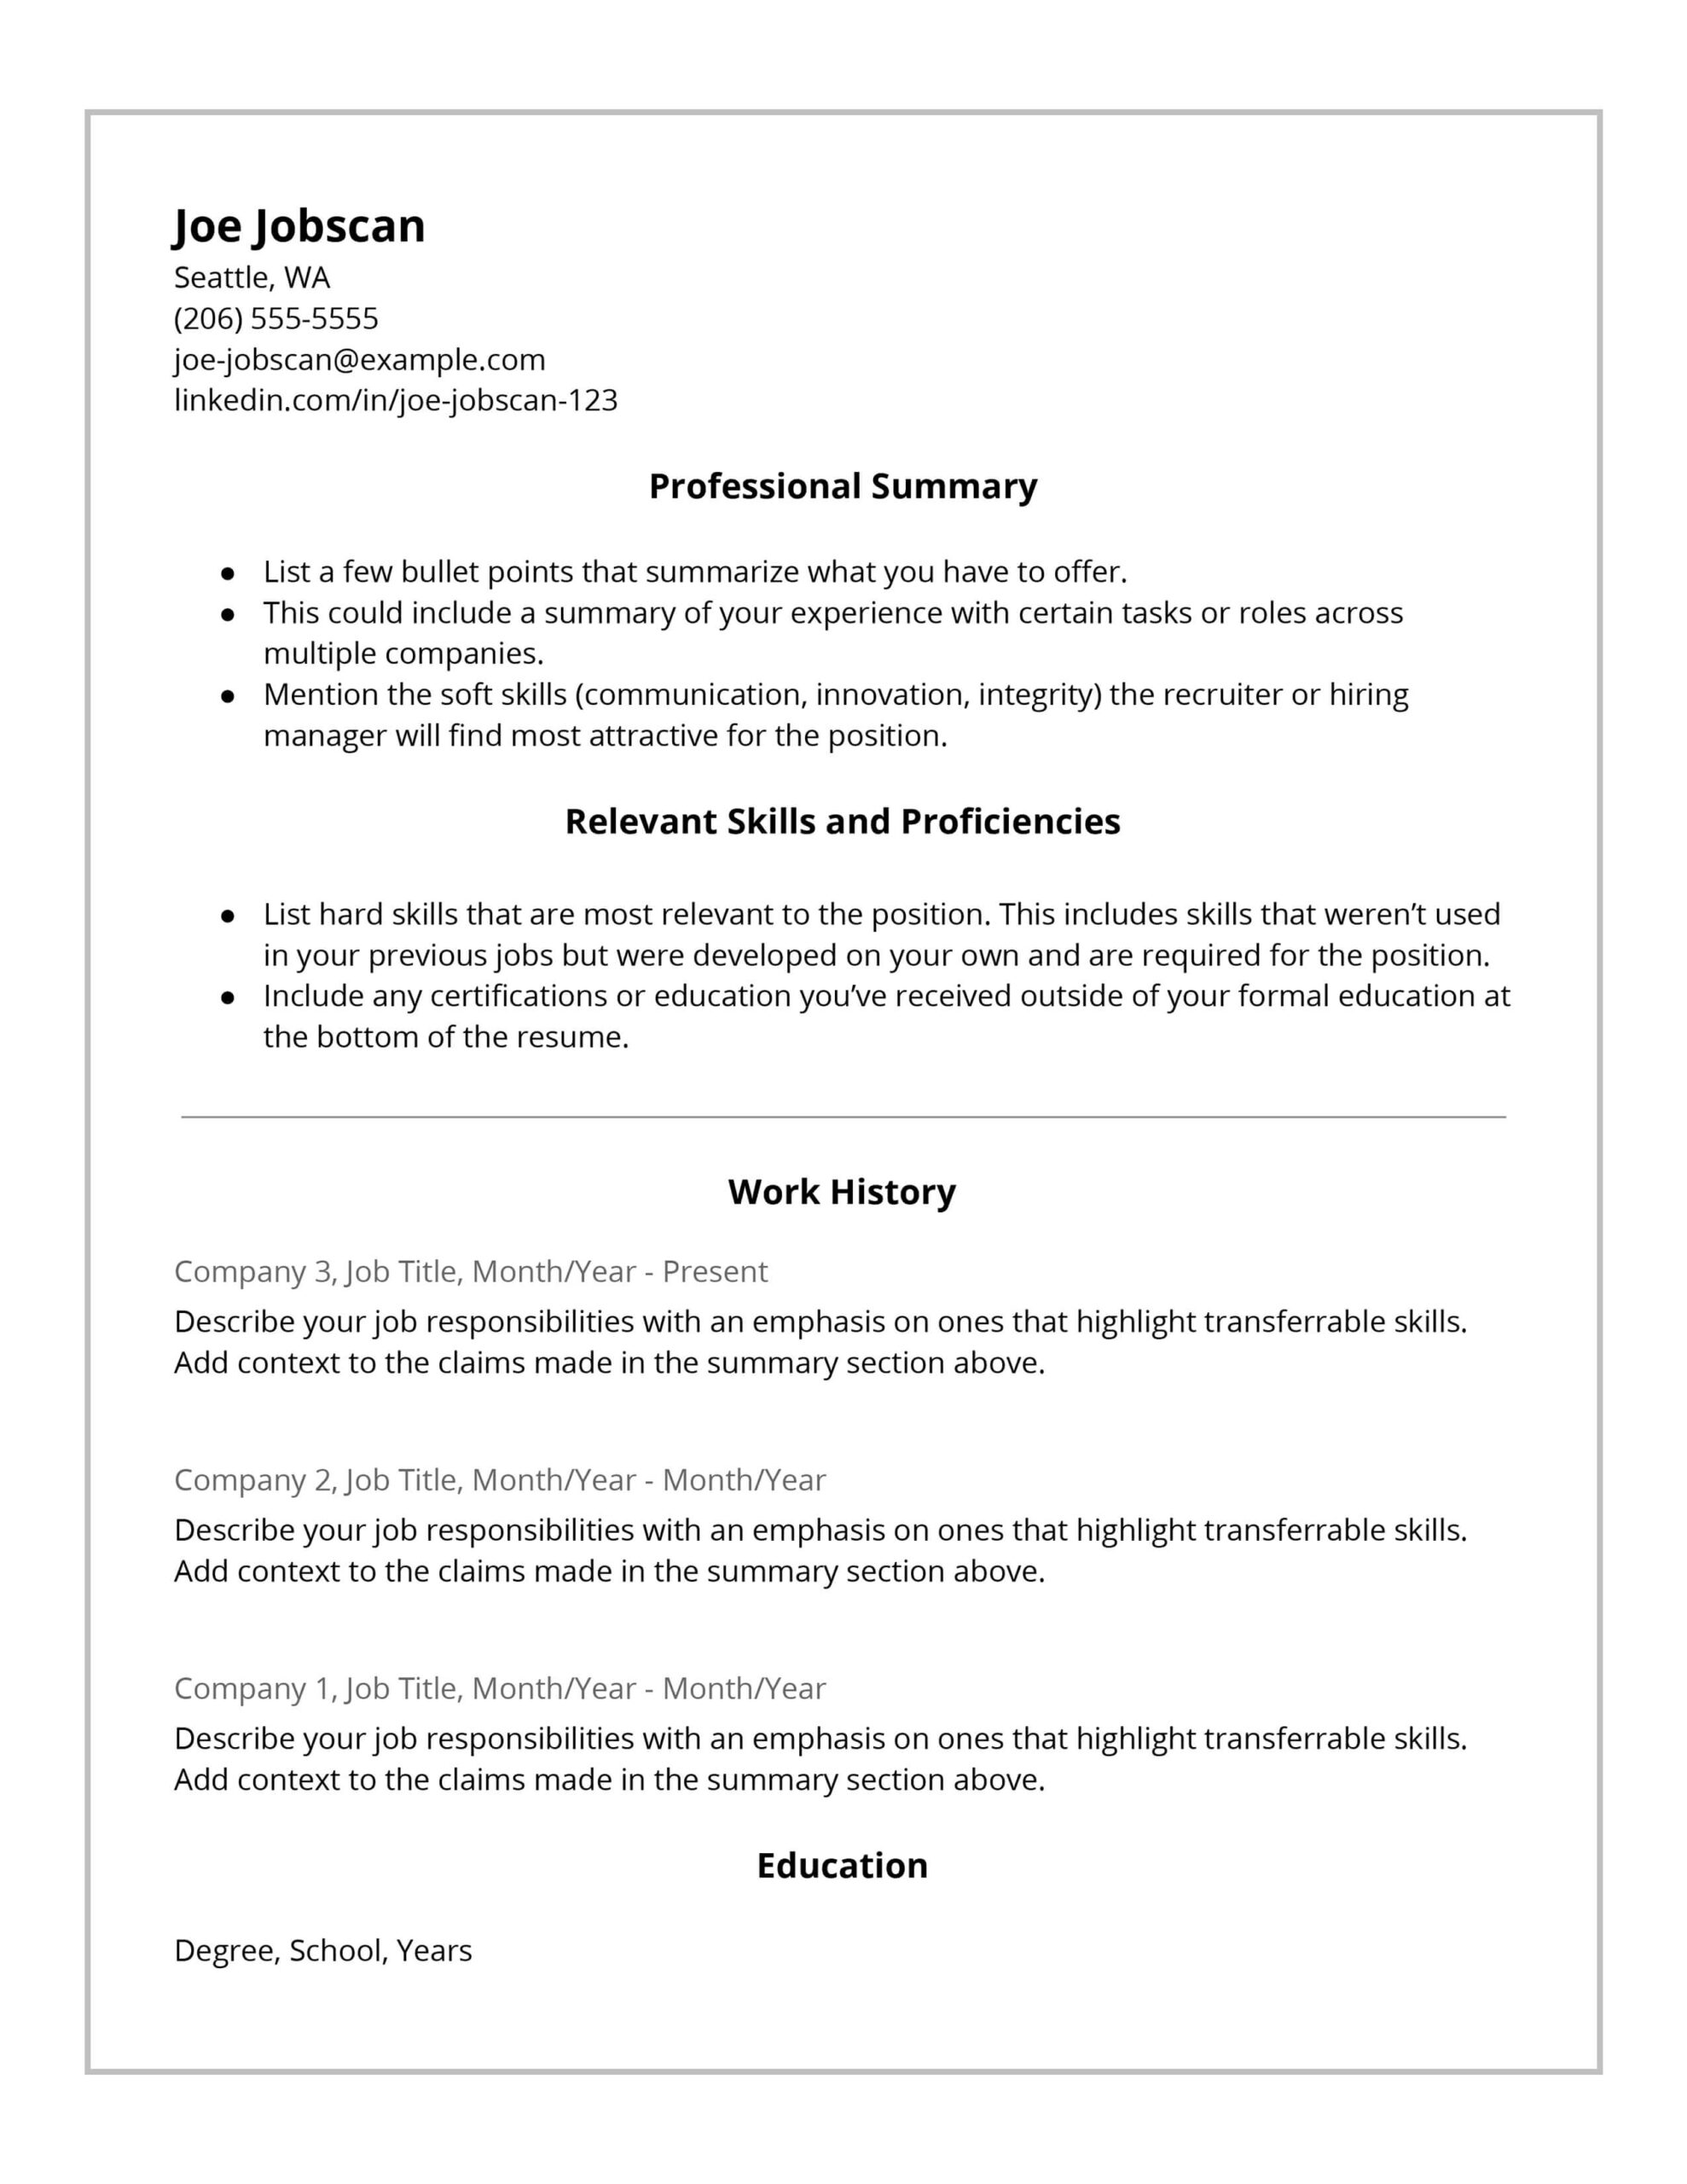 recruiters hate the functional resume format here professional tips hybrid template Resume Professional Resume Tips